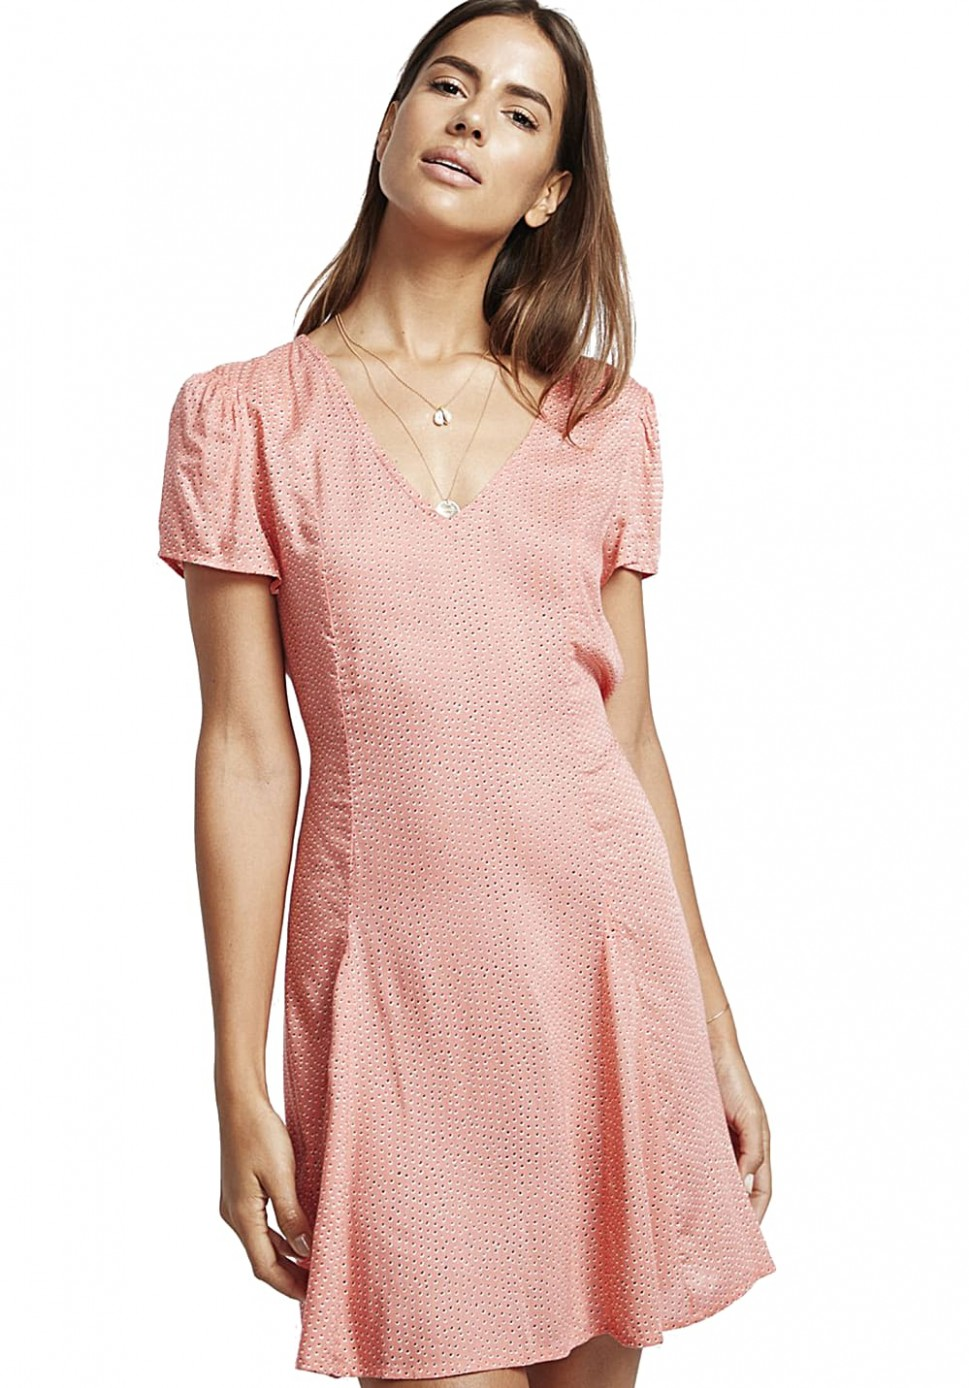 billabong skate day kleid für damen pink rosa kleid damen